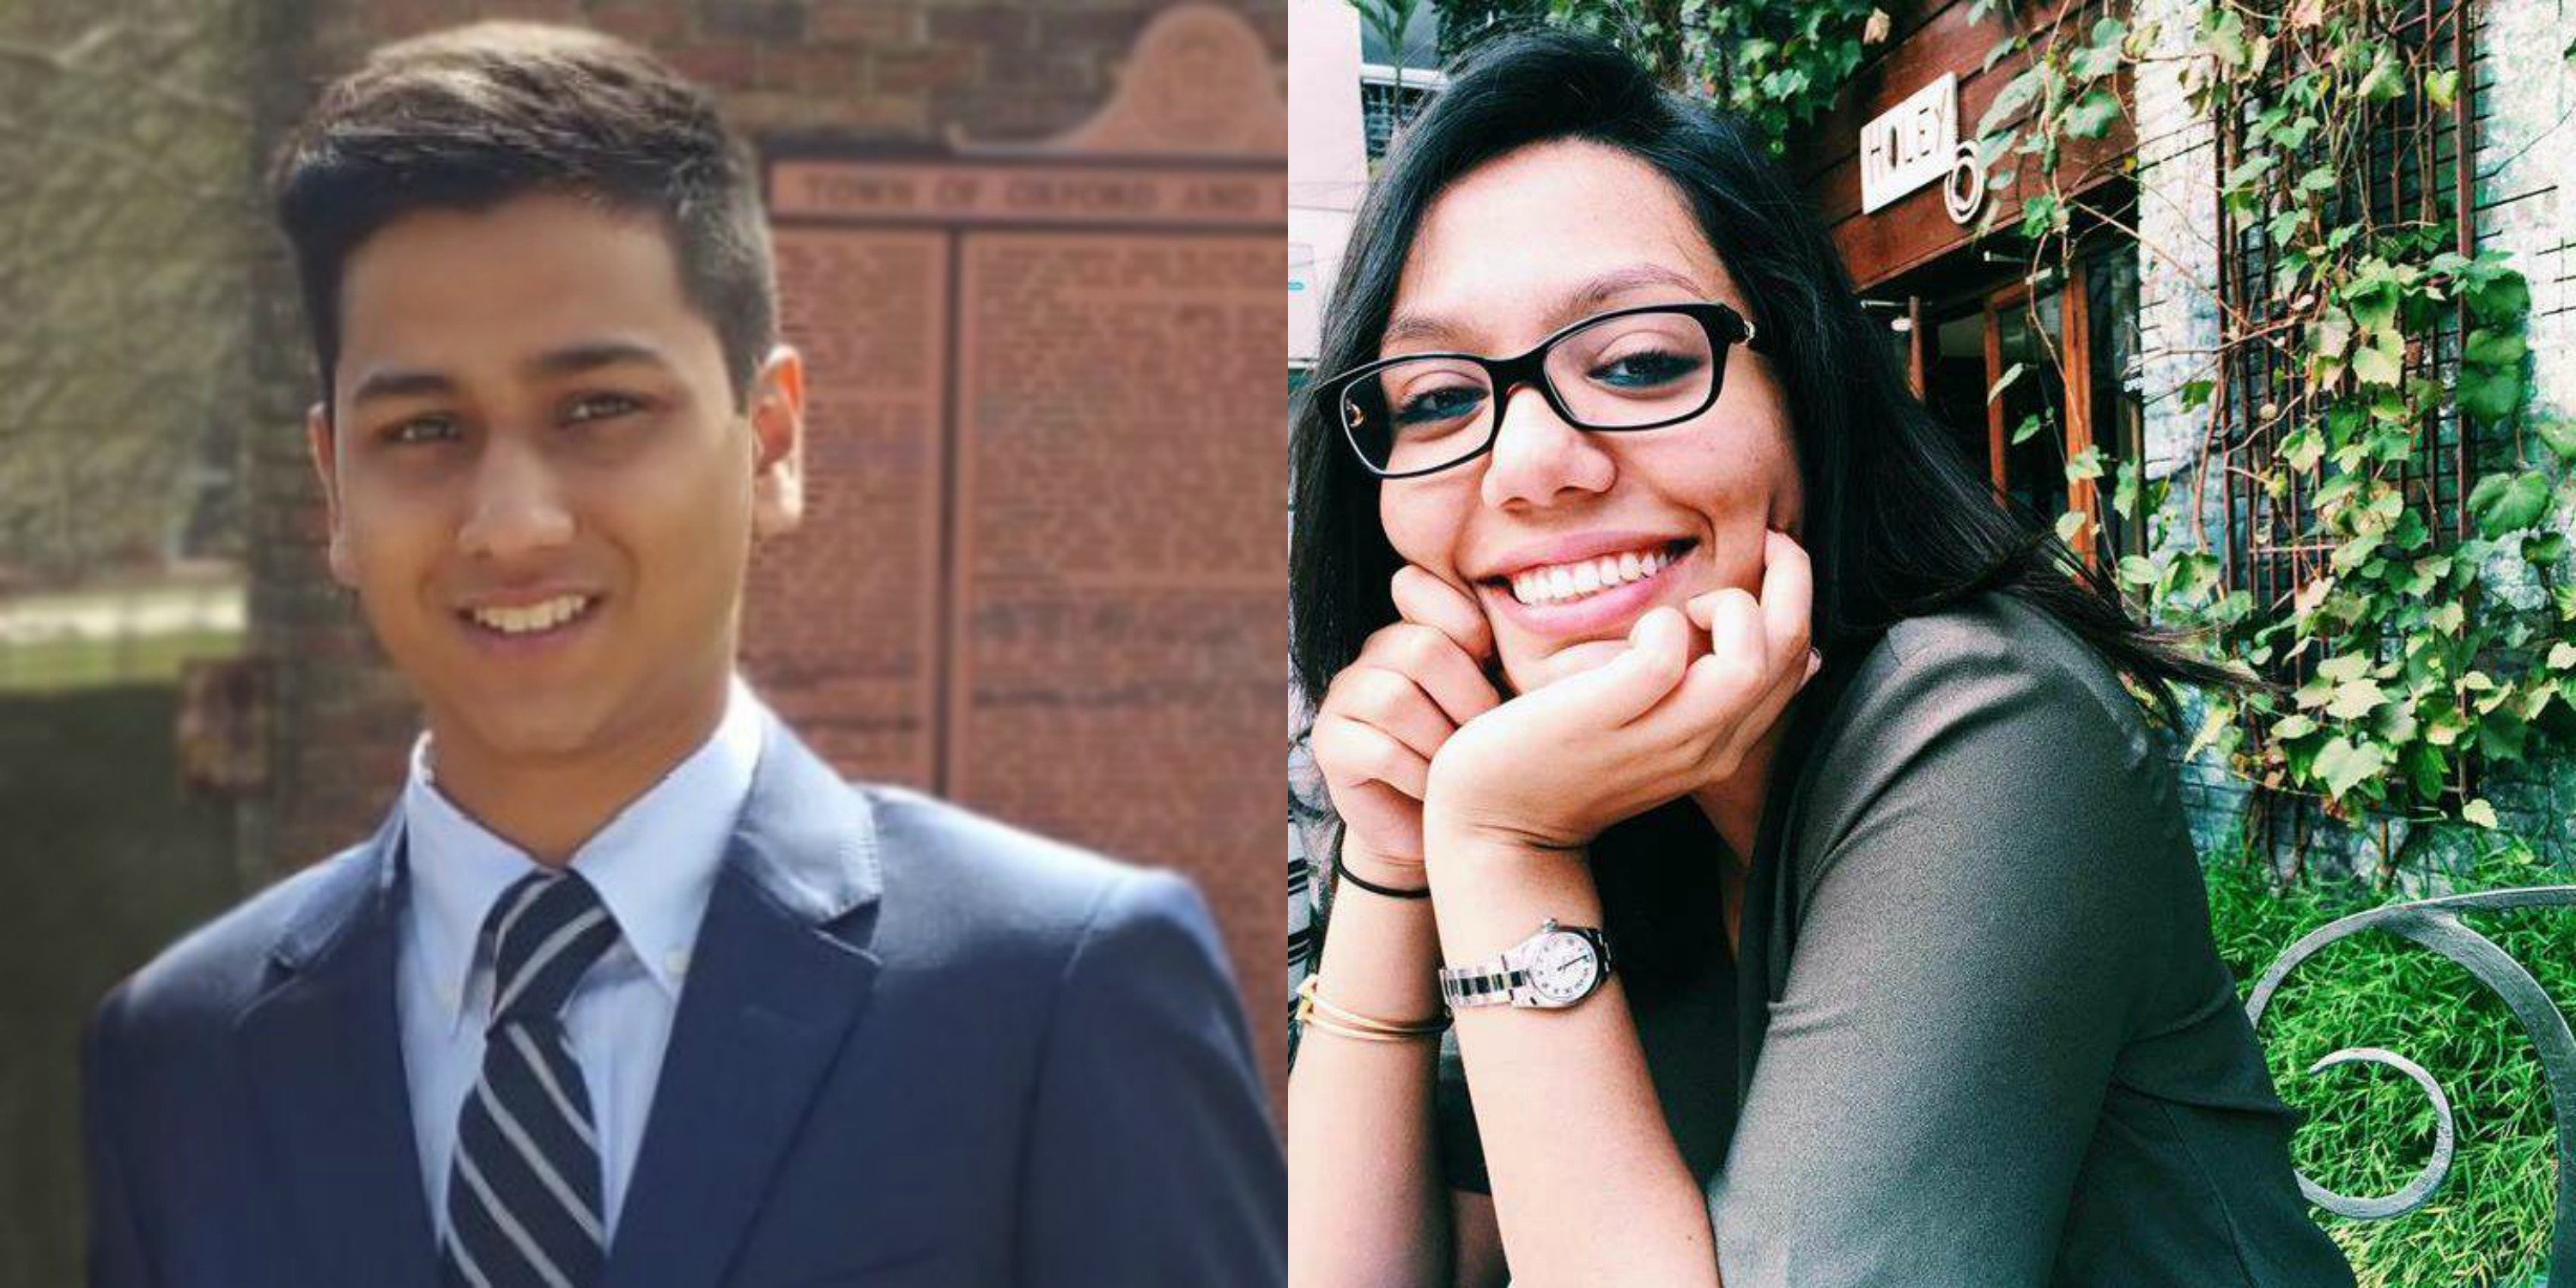 Rising Oxford College sophomore Abinta Kabir (left) and rising Goizueta Business School junior Faraaz Hossain (right) were taken hostage and killed in the Dhaka, Bangladesh, attack. / Courtesy of Facebook